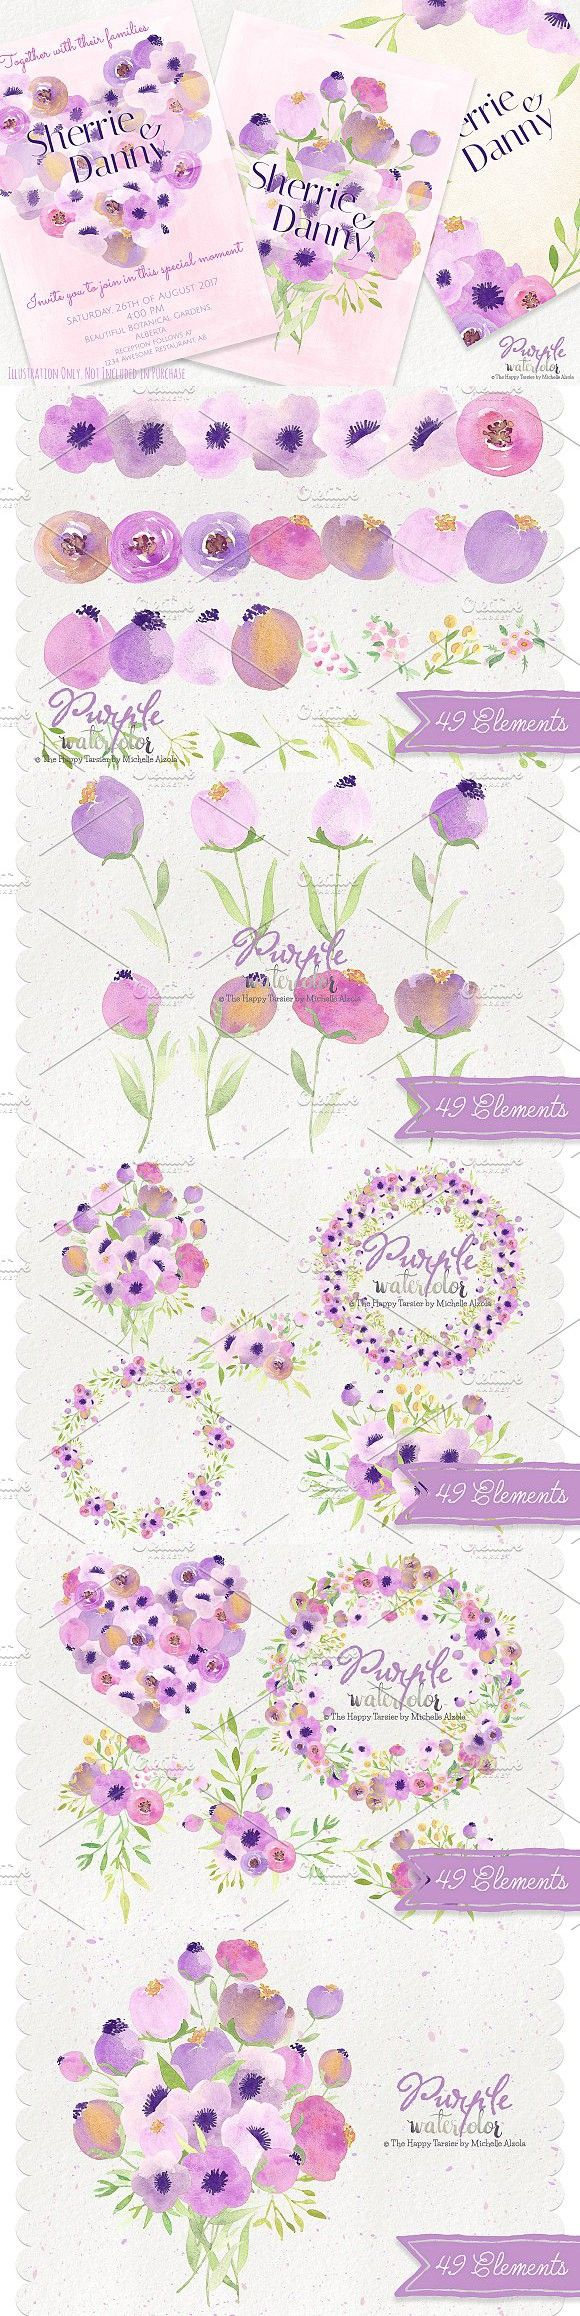 medium resolution of watercolor purple flower clipart watercolor graphic design pinterest flower clipart